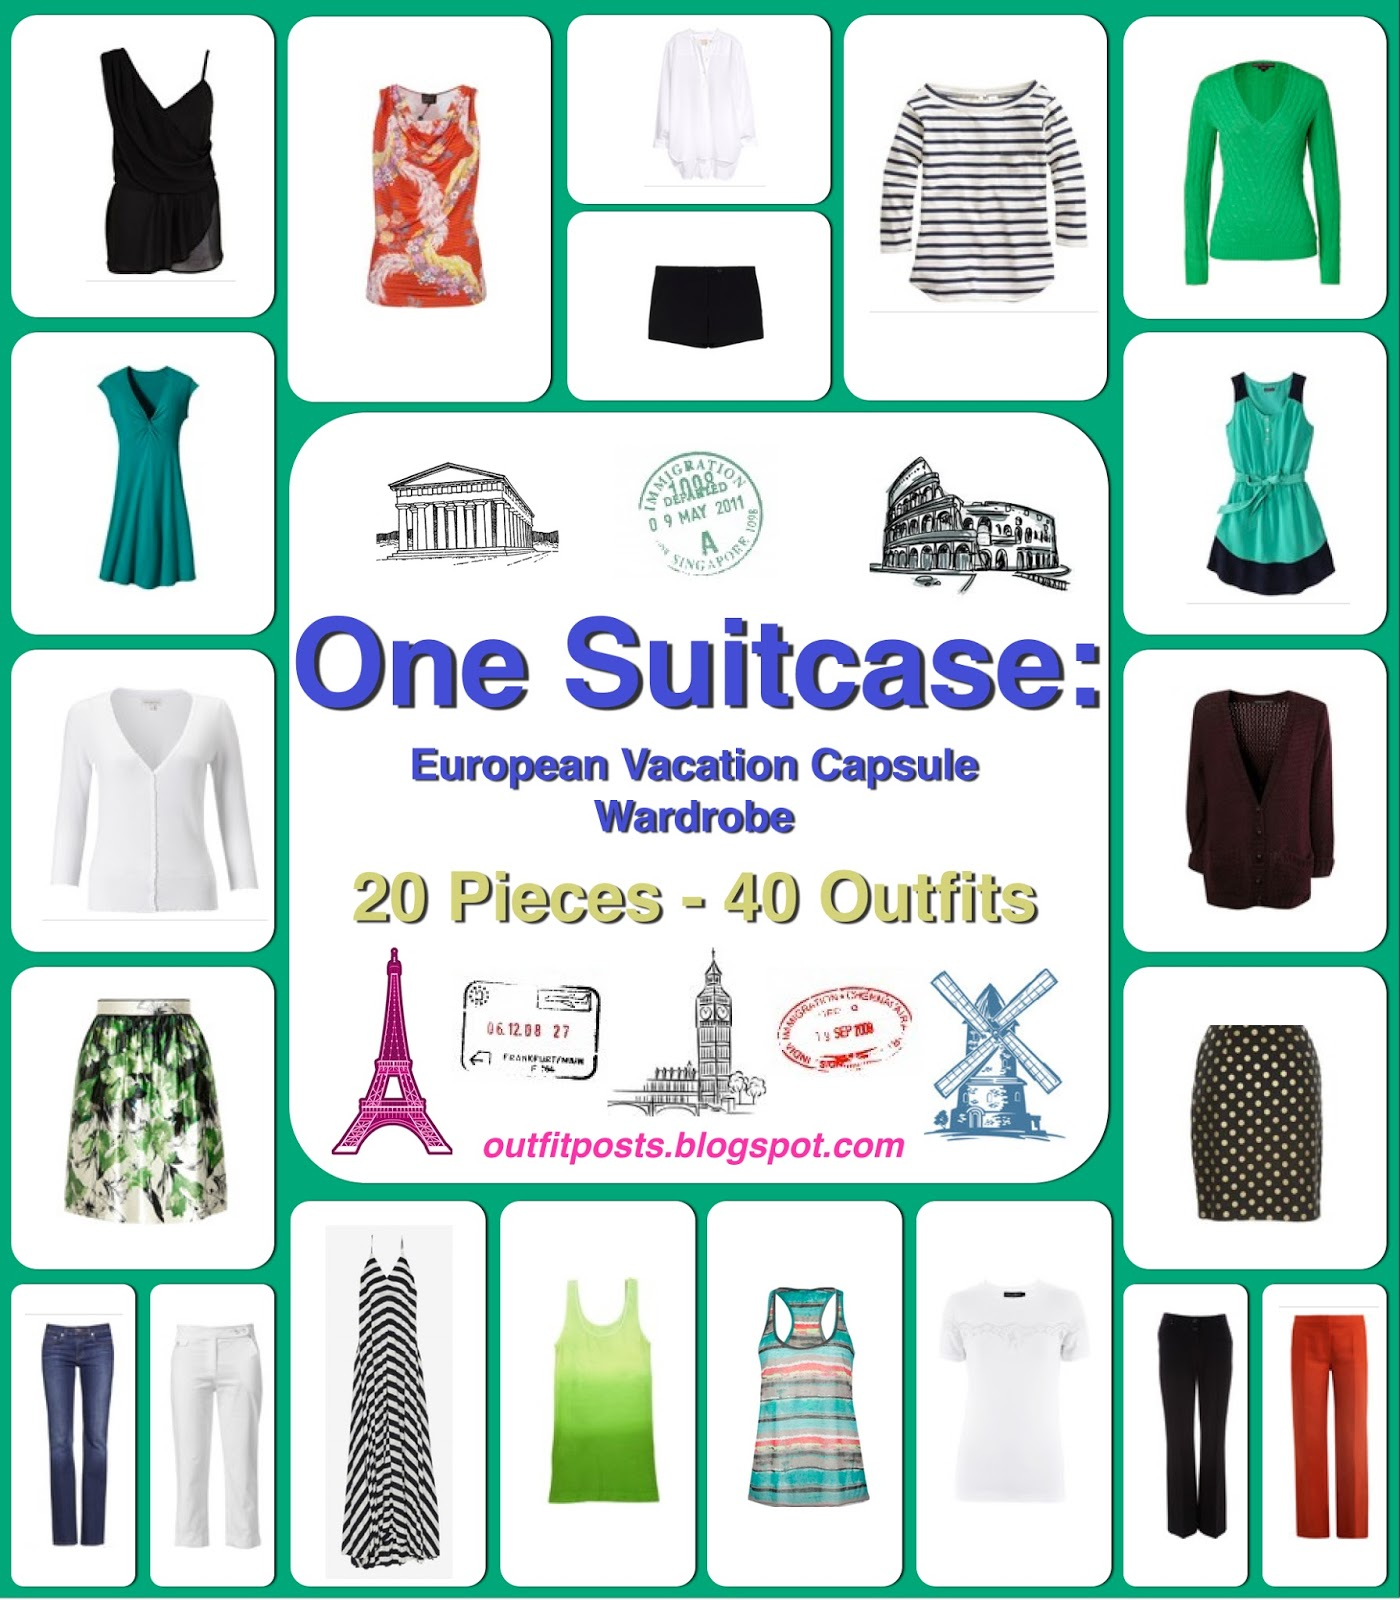 6bb7821cb444 one suitcase  european vacation capsule wardrobe